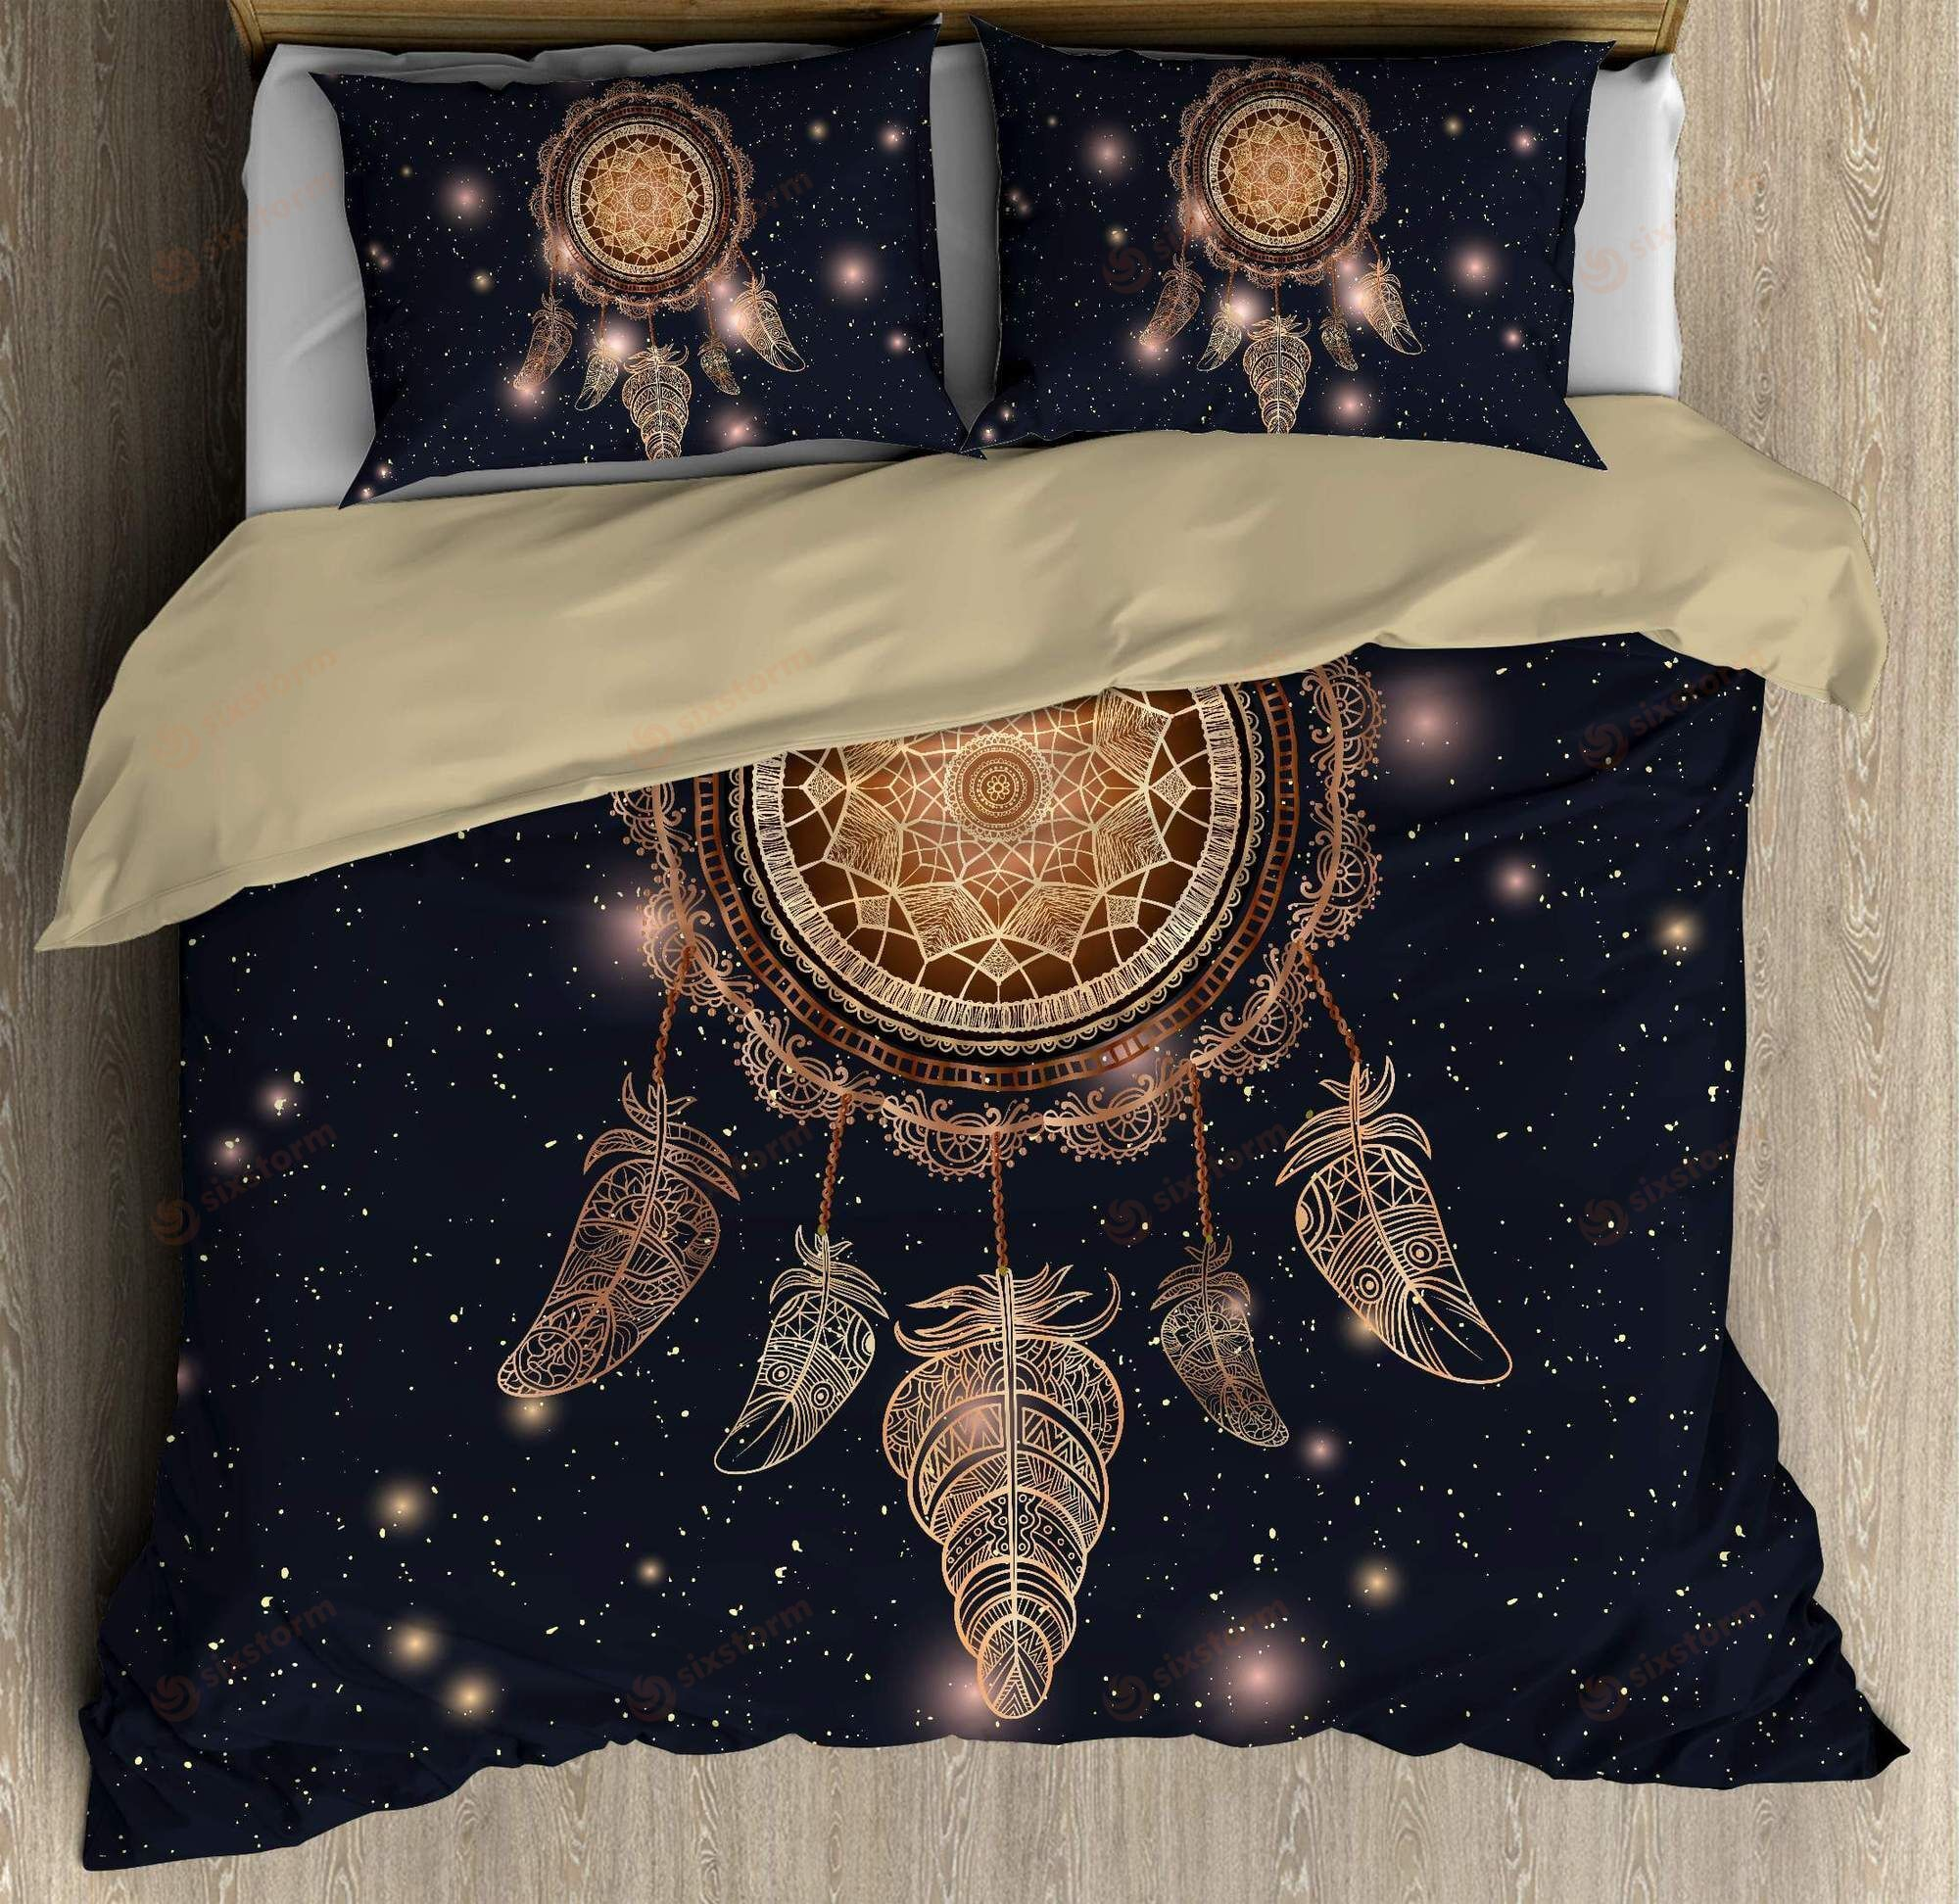 American Halloween Sweater and Bedding set